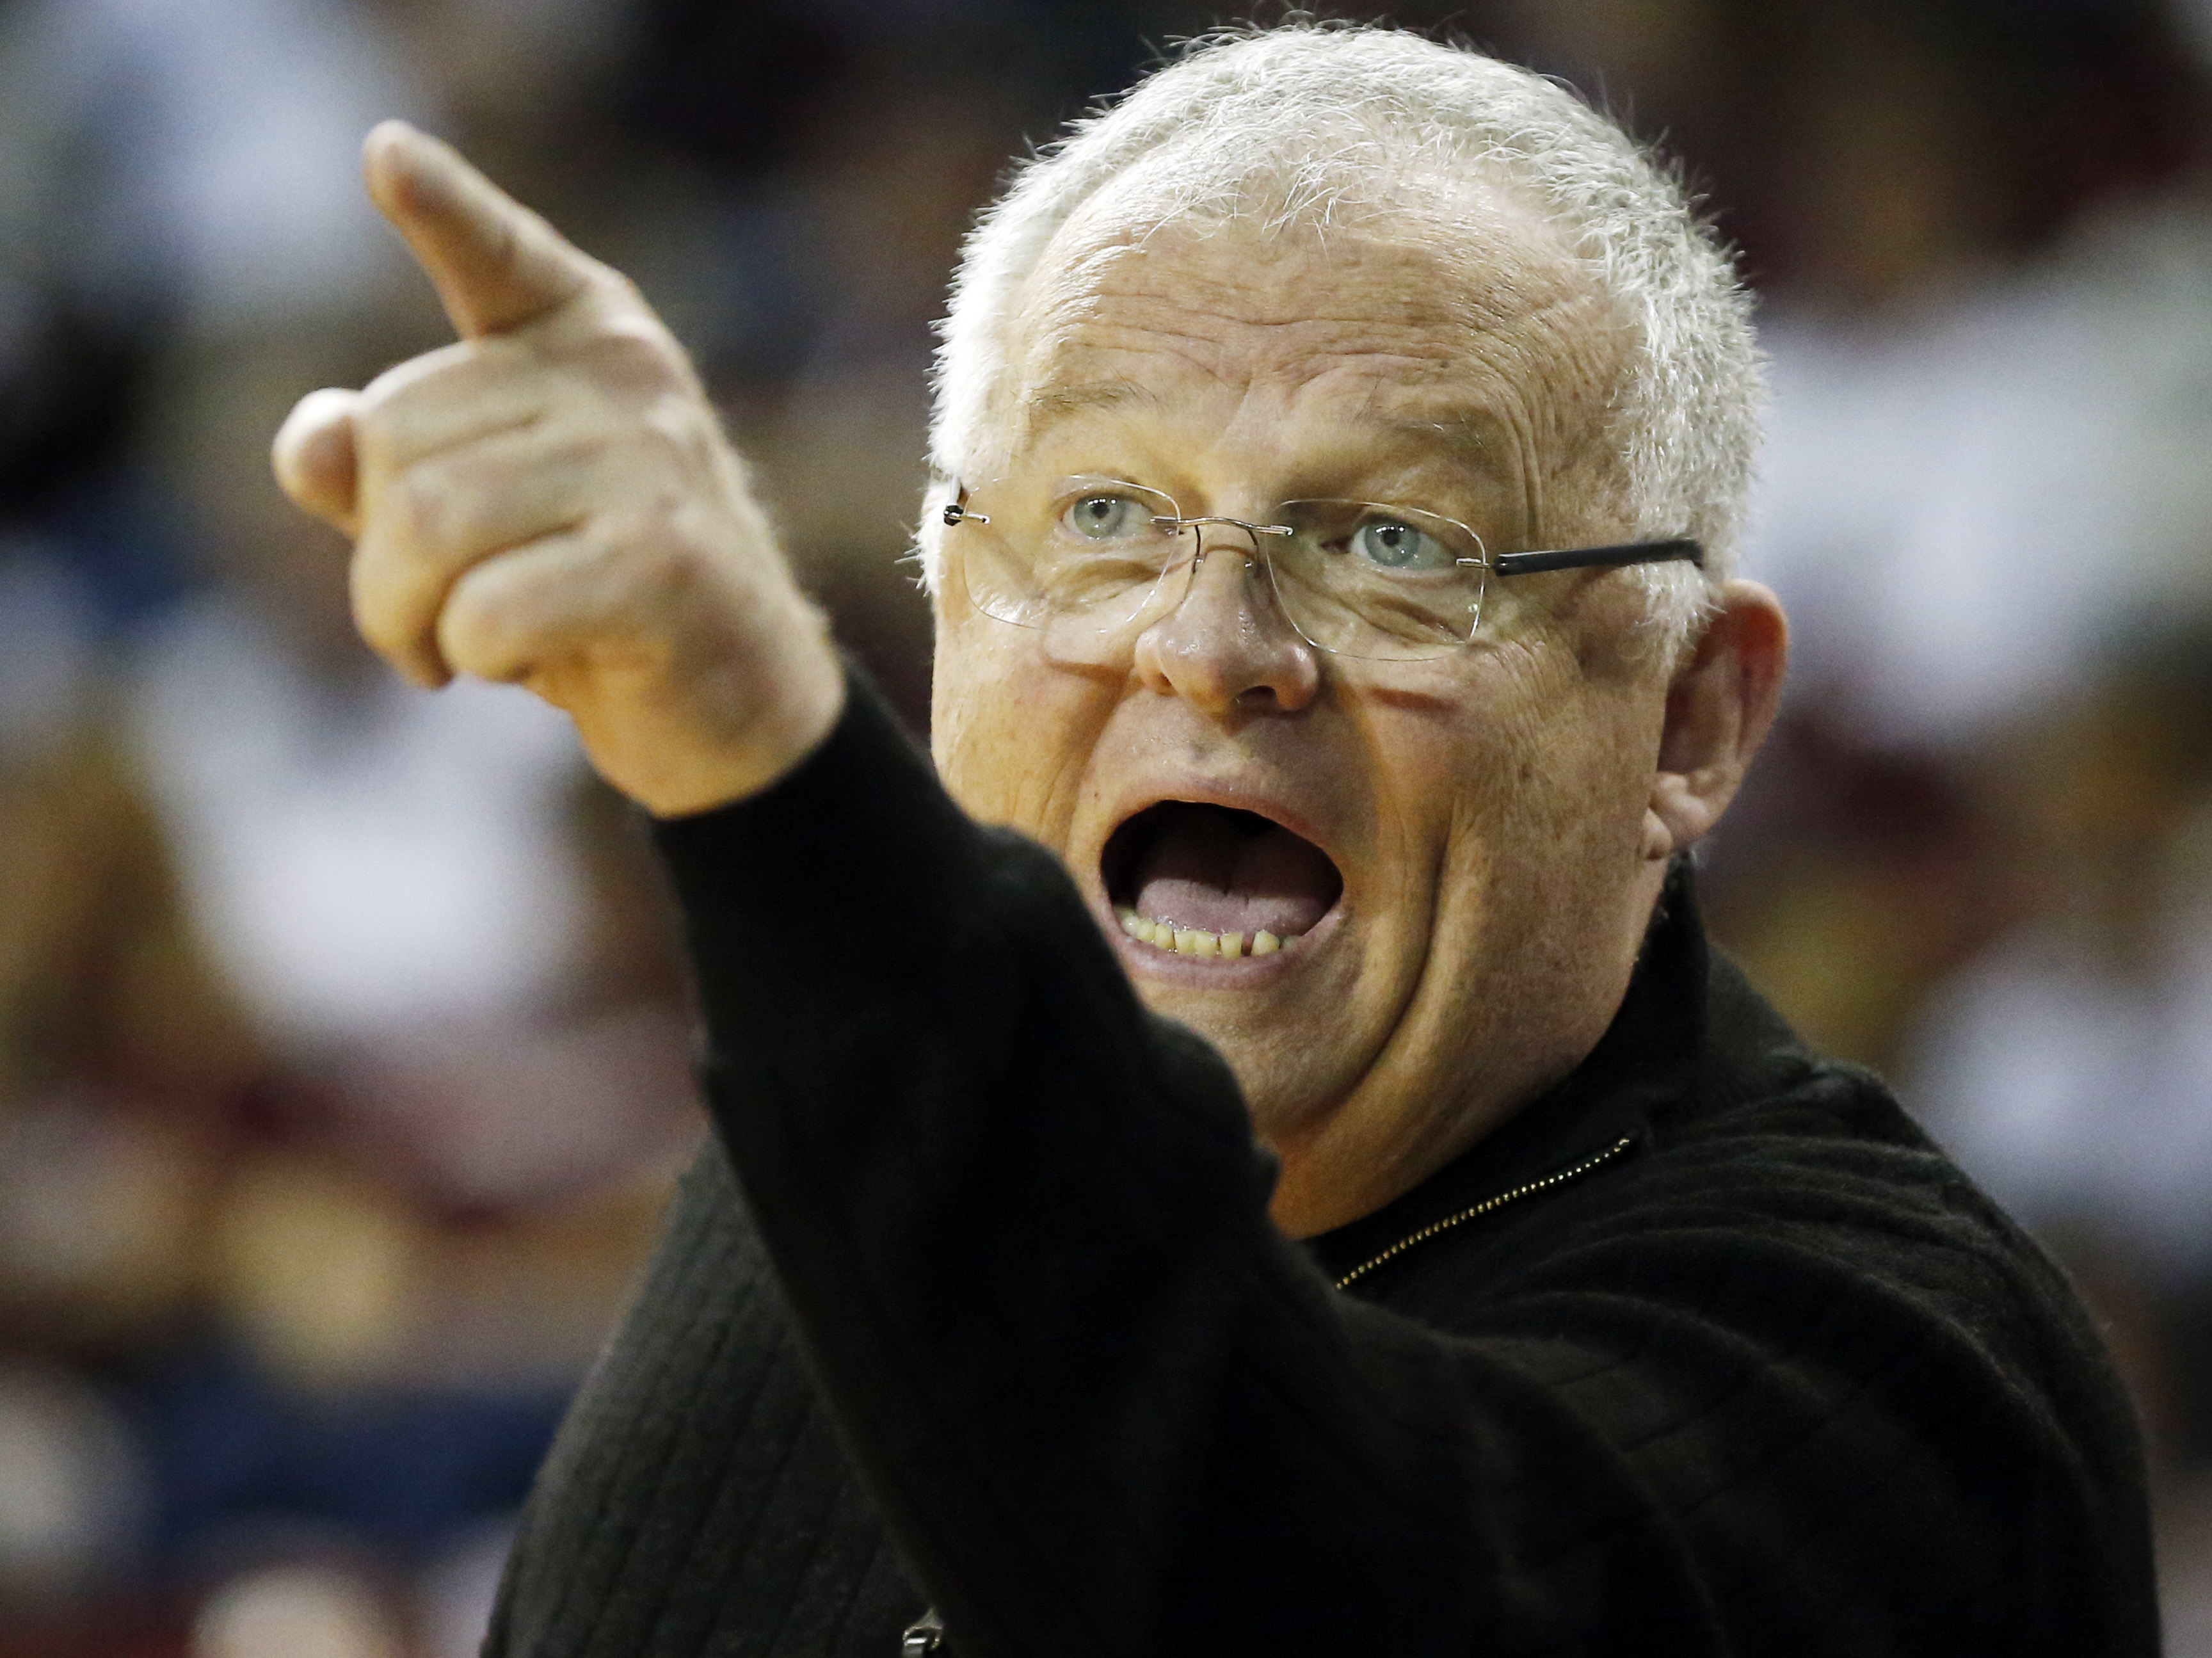 Chattanooga head coach Jim Foster calls out to the officials during the second half in a first-round women's college basketball game against Mississippi State in the NCAA Tournament, Friday, March 18, 2016, in Starkville, Miss. Mississippi State won 60-50